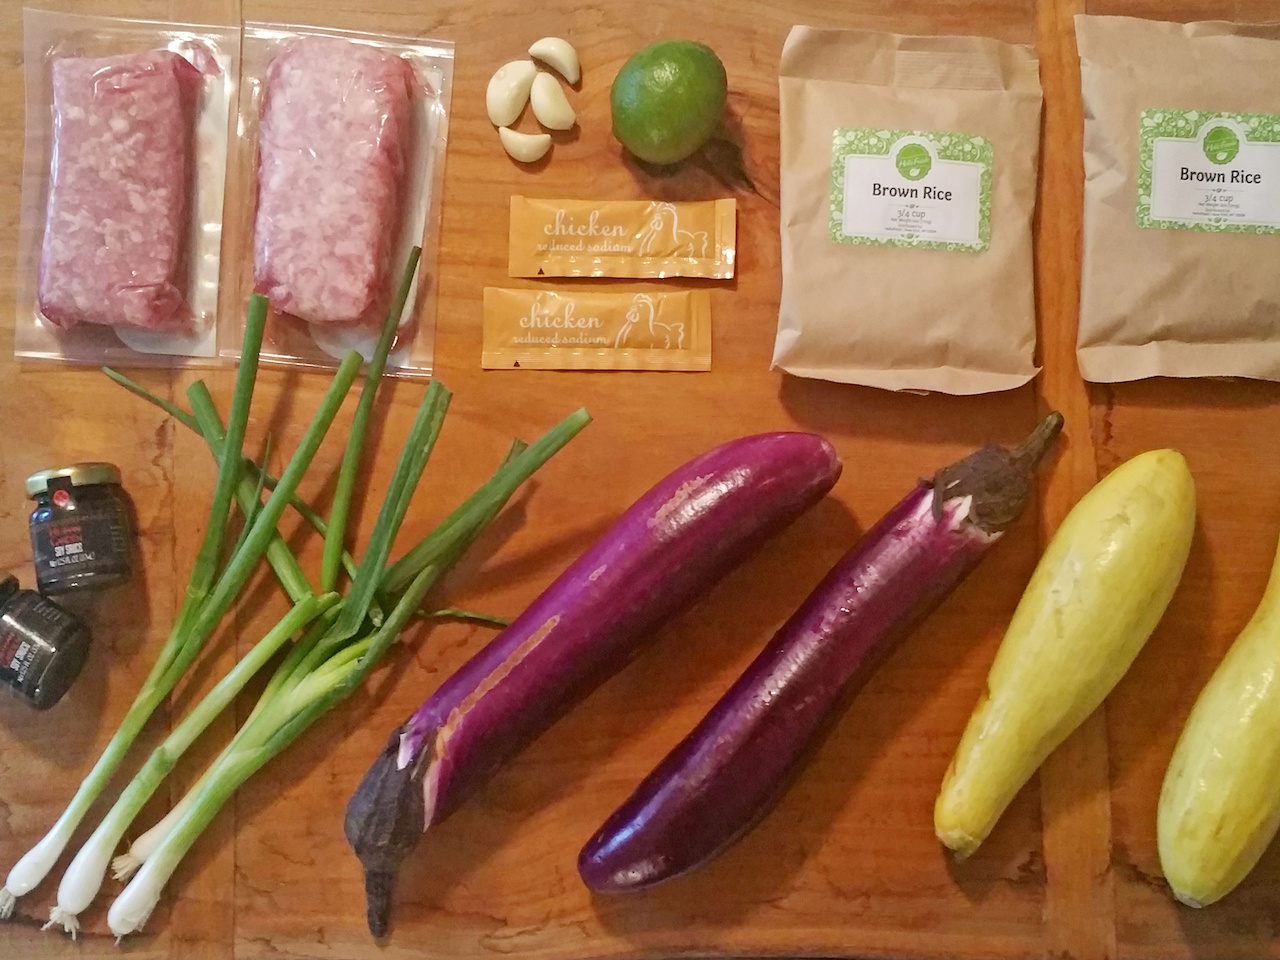 The ingredients for the pork and Chinese eggplant stir-fry over brown rice